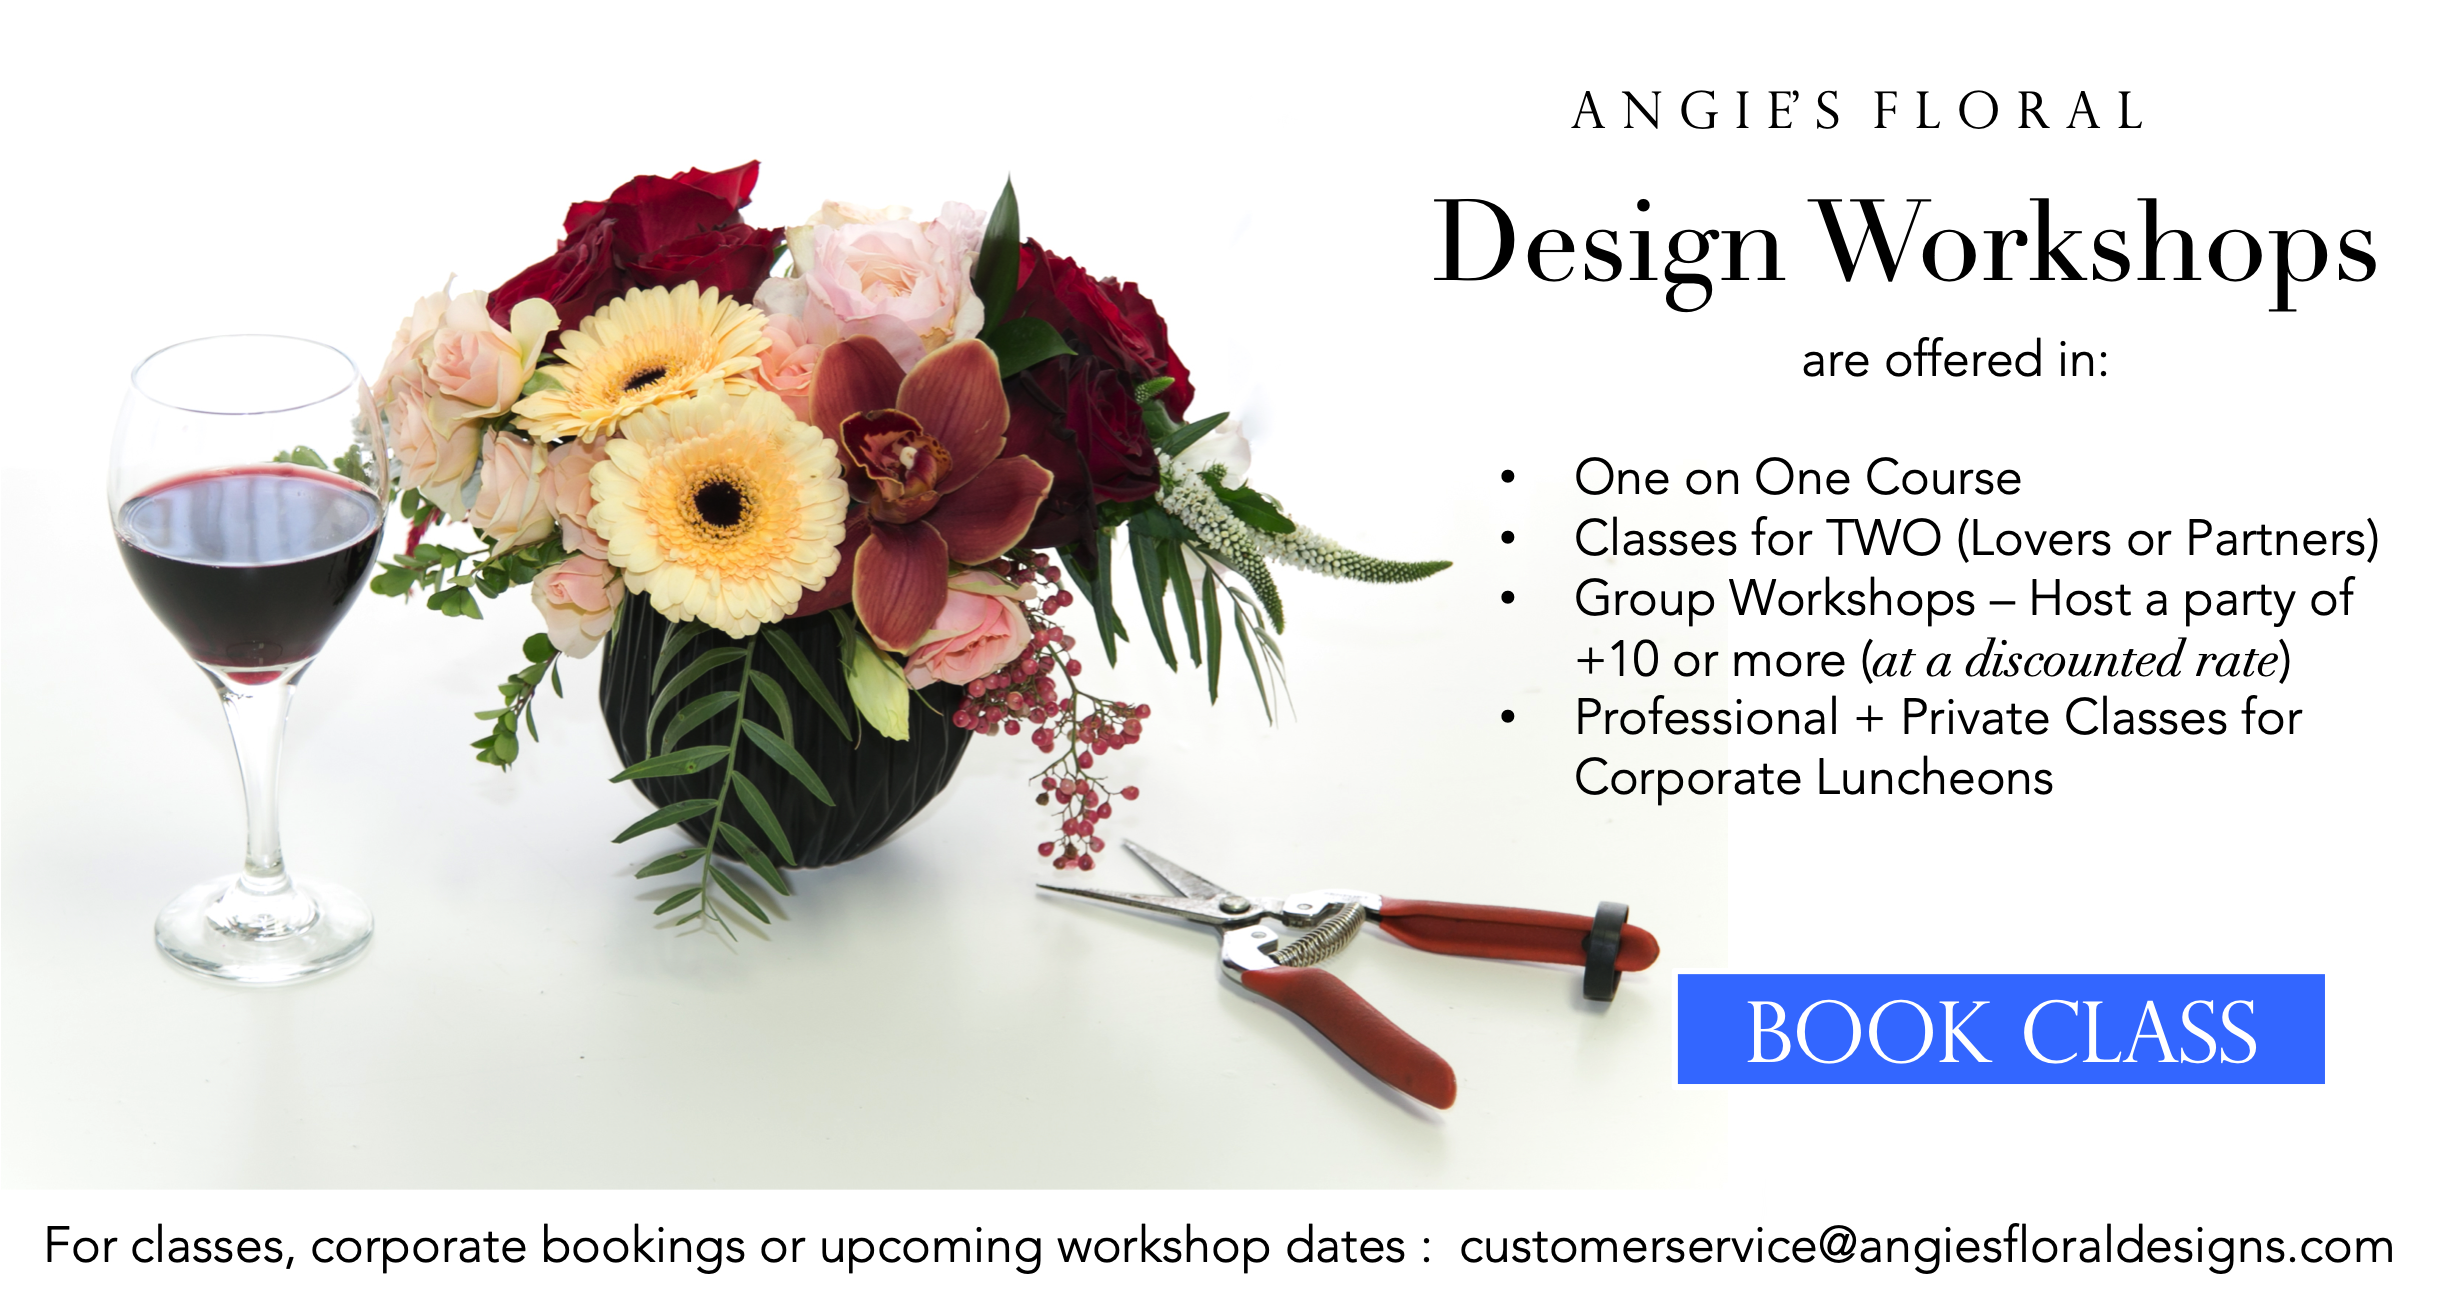 79912-corporate-angies-floral-designs-el-paso-floral-workshops-classes-florales-floral-design-workshops-el-paso-texas-79912-angies-flower-.png